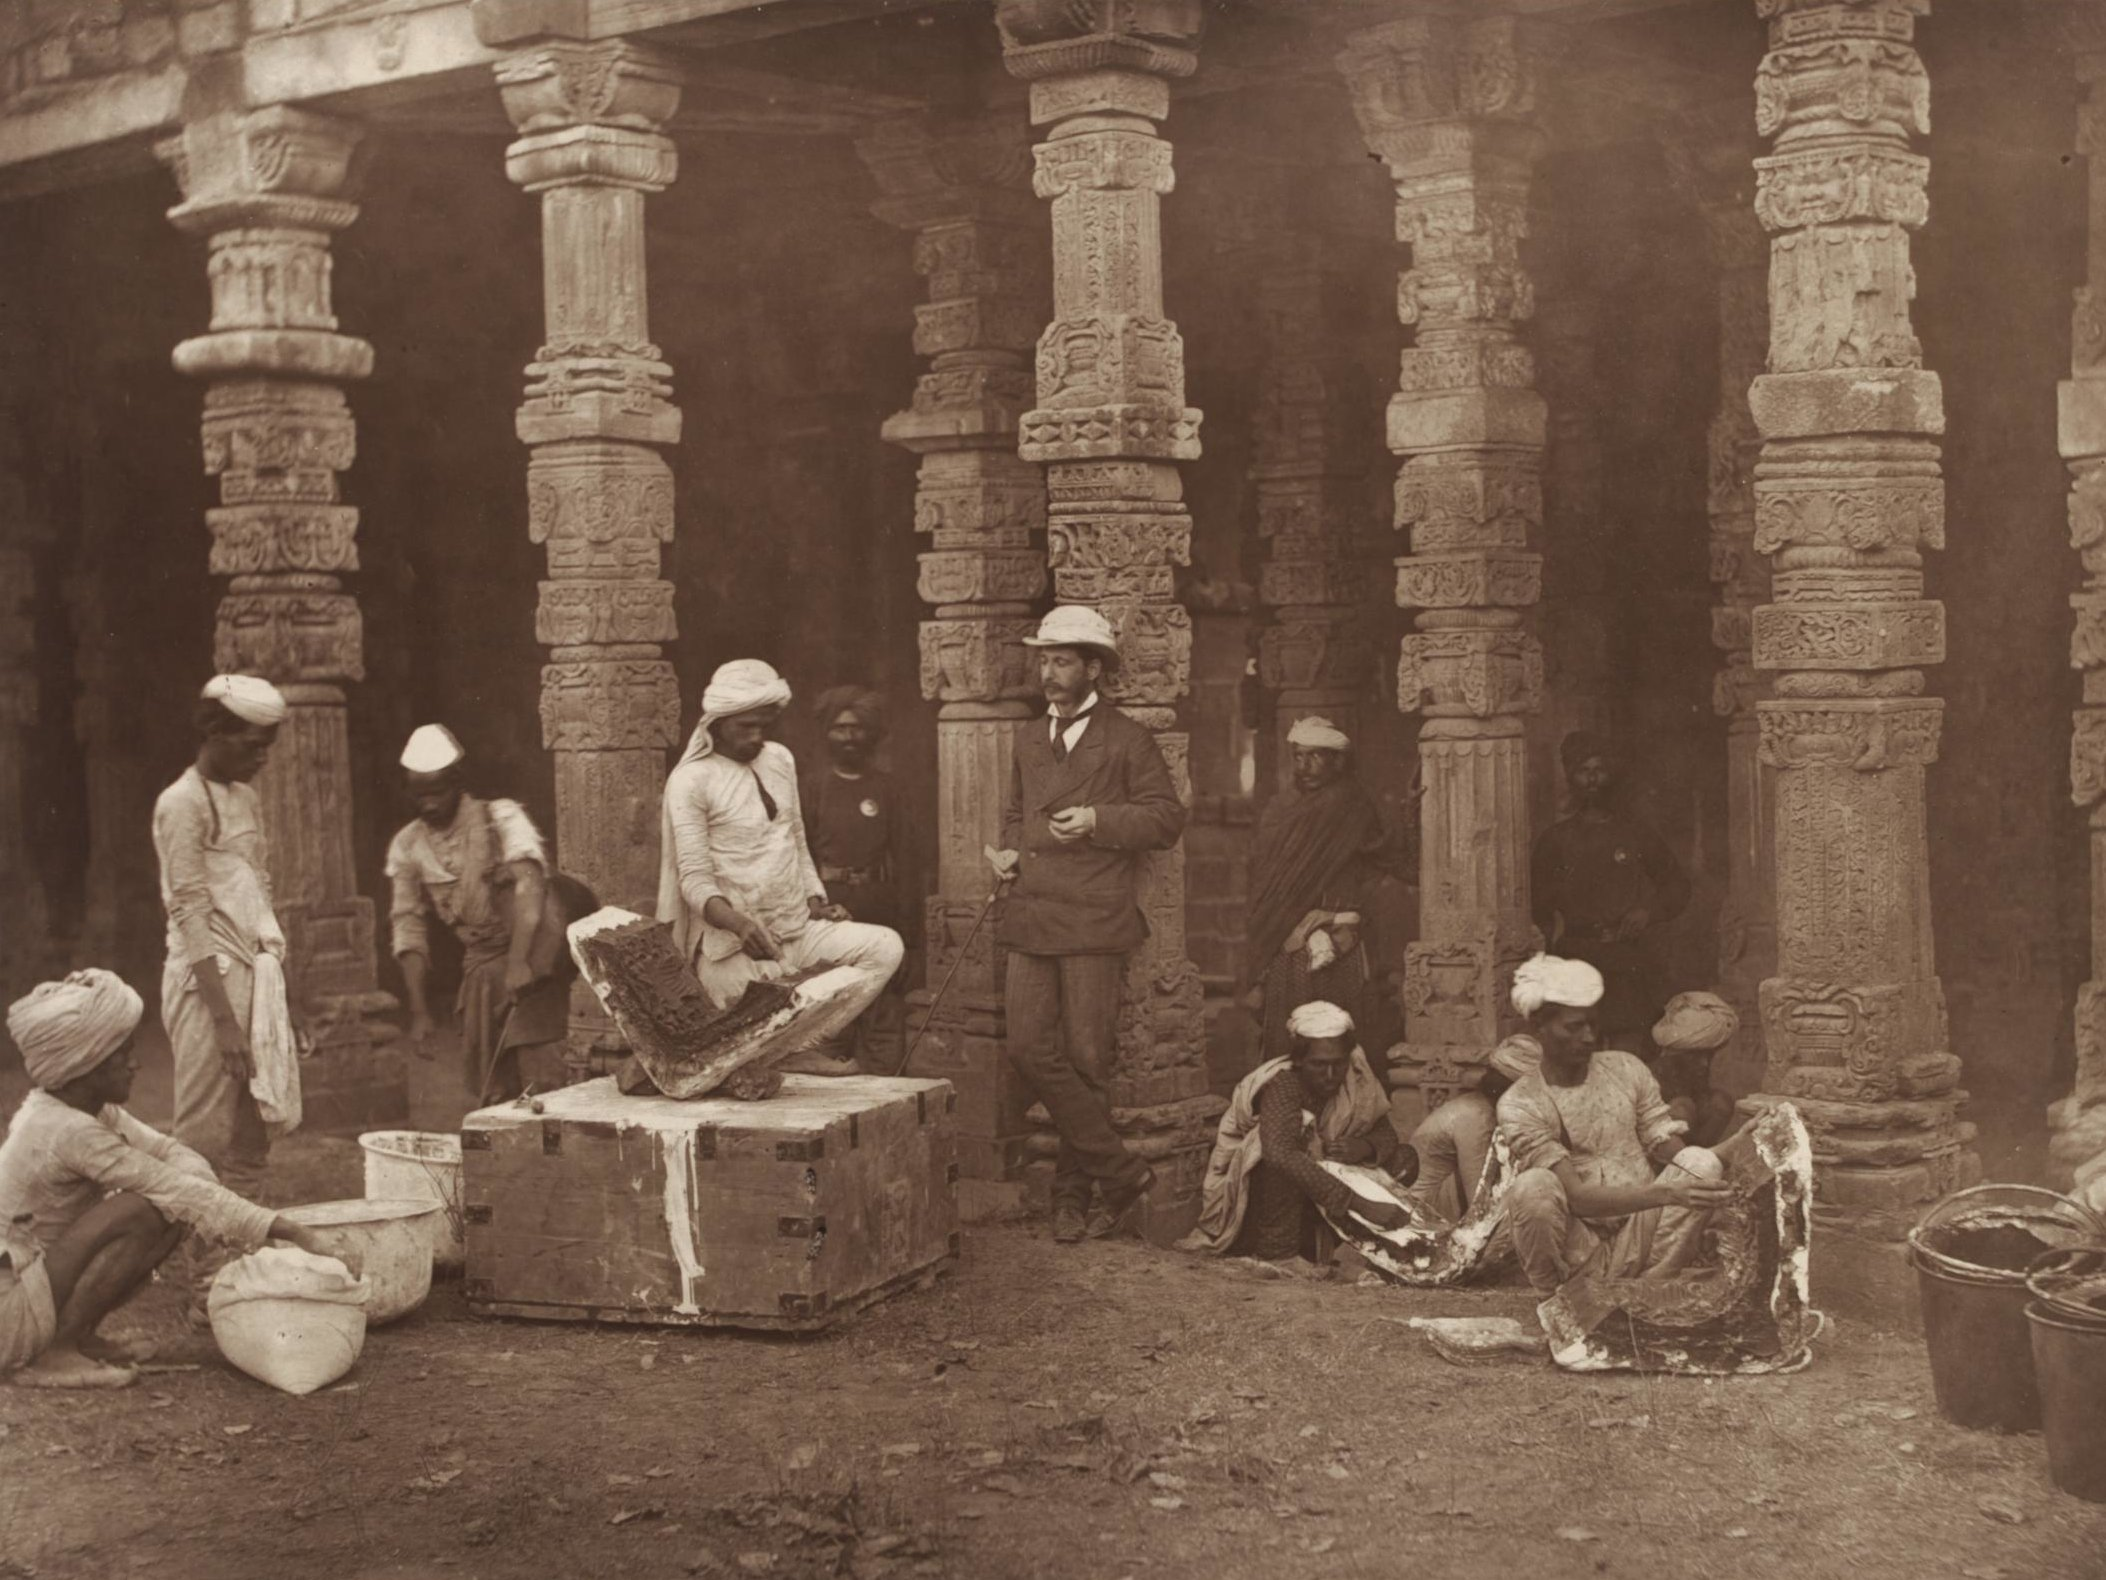 Indian moulders, supervised by a colonial official, at work. Qutb Minar, Delhi, 1856